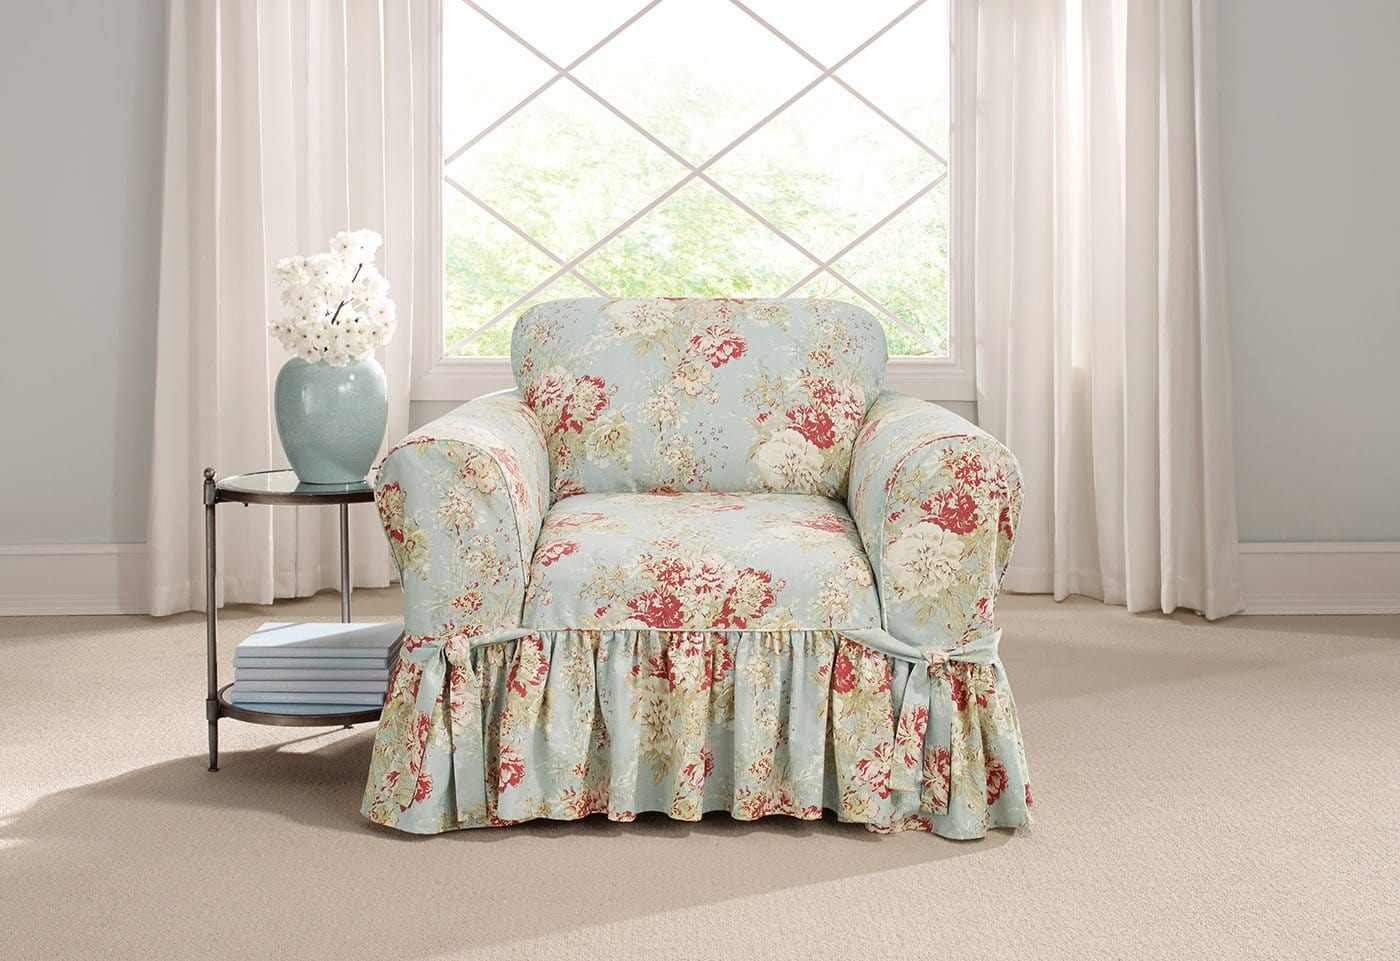 Ballad Bouquet By Waverly One Piece Chair Slipcover 100% Cotton Machine Washable - Chair / Box Cushion / Robins Egg